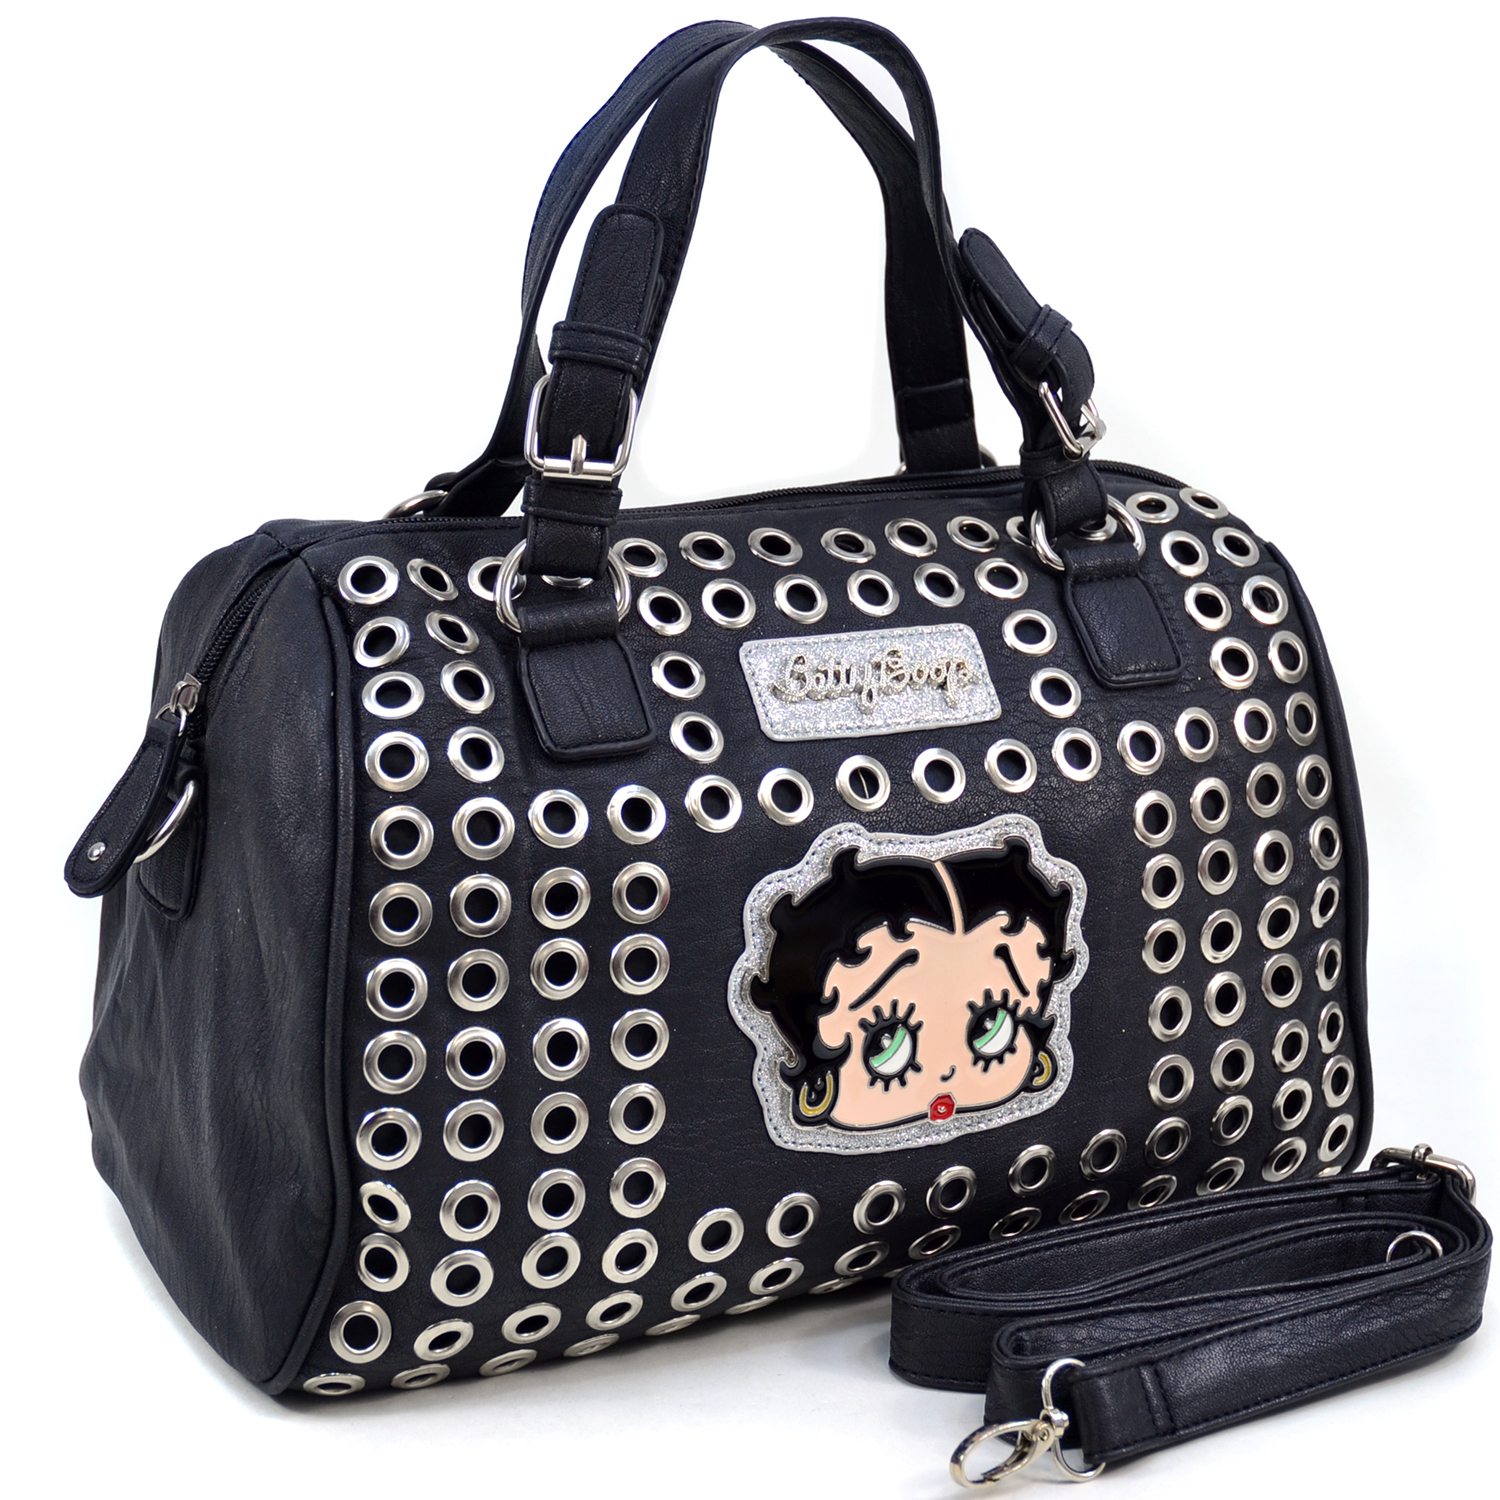 Betty Boop Cut-out Design Fashion Satchel